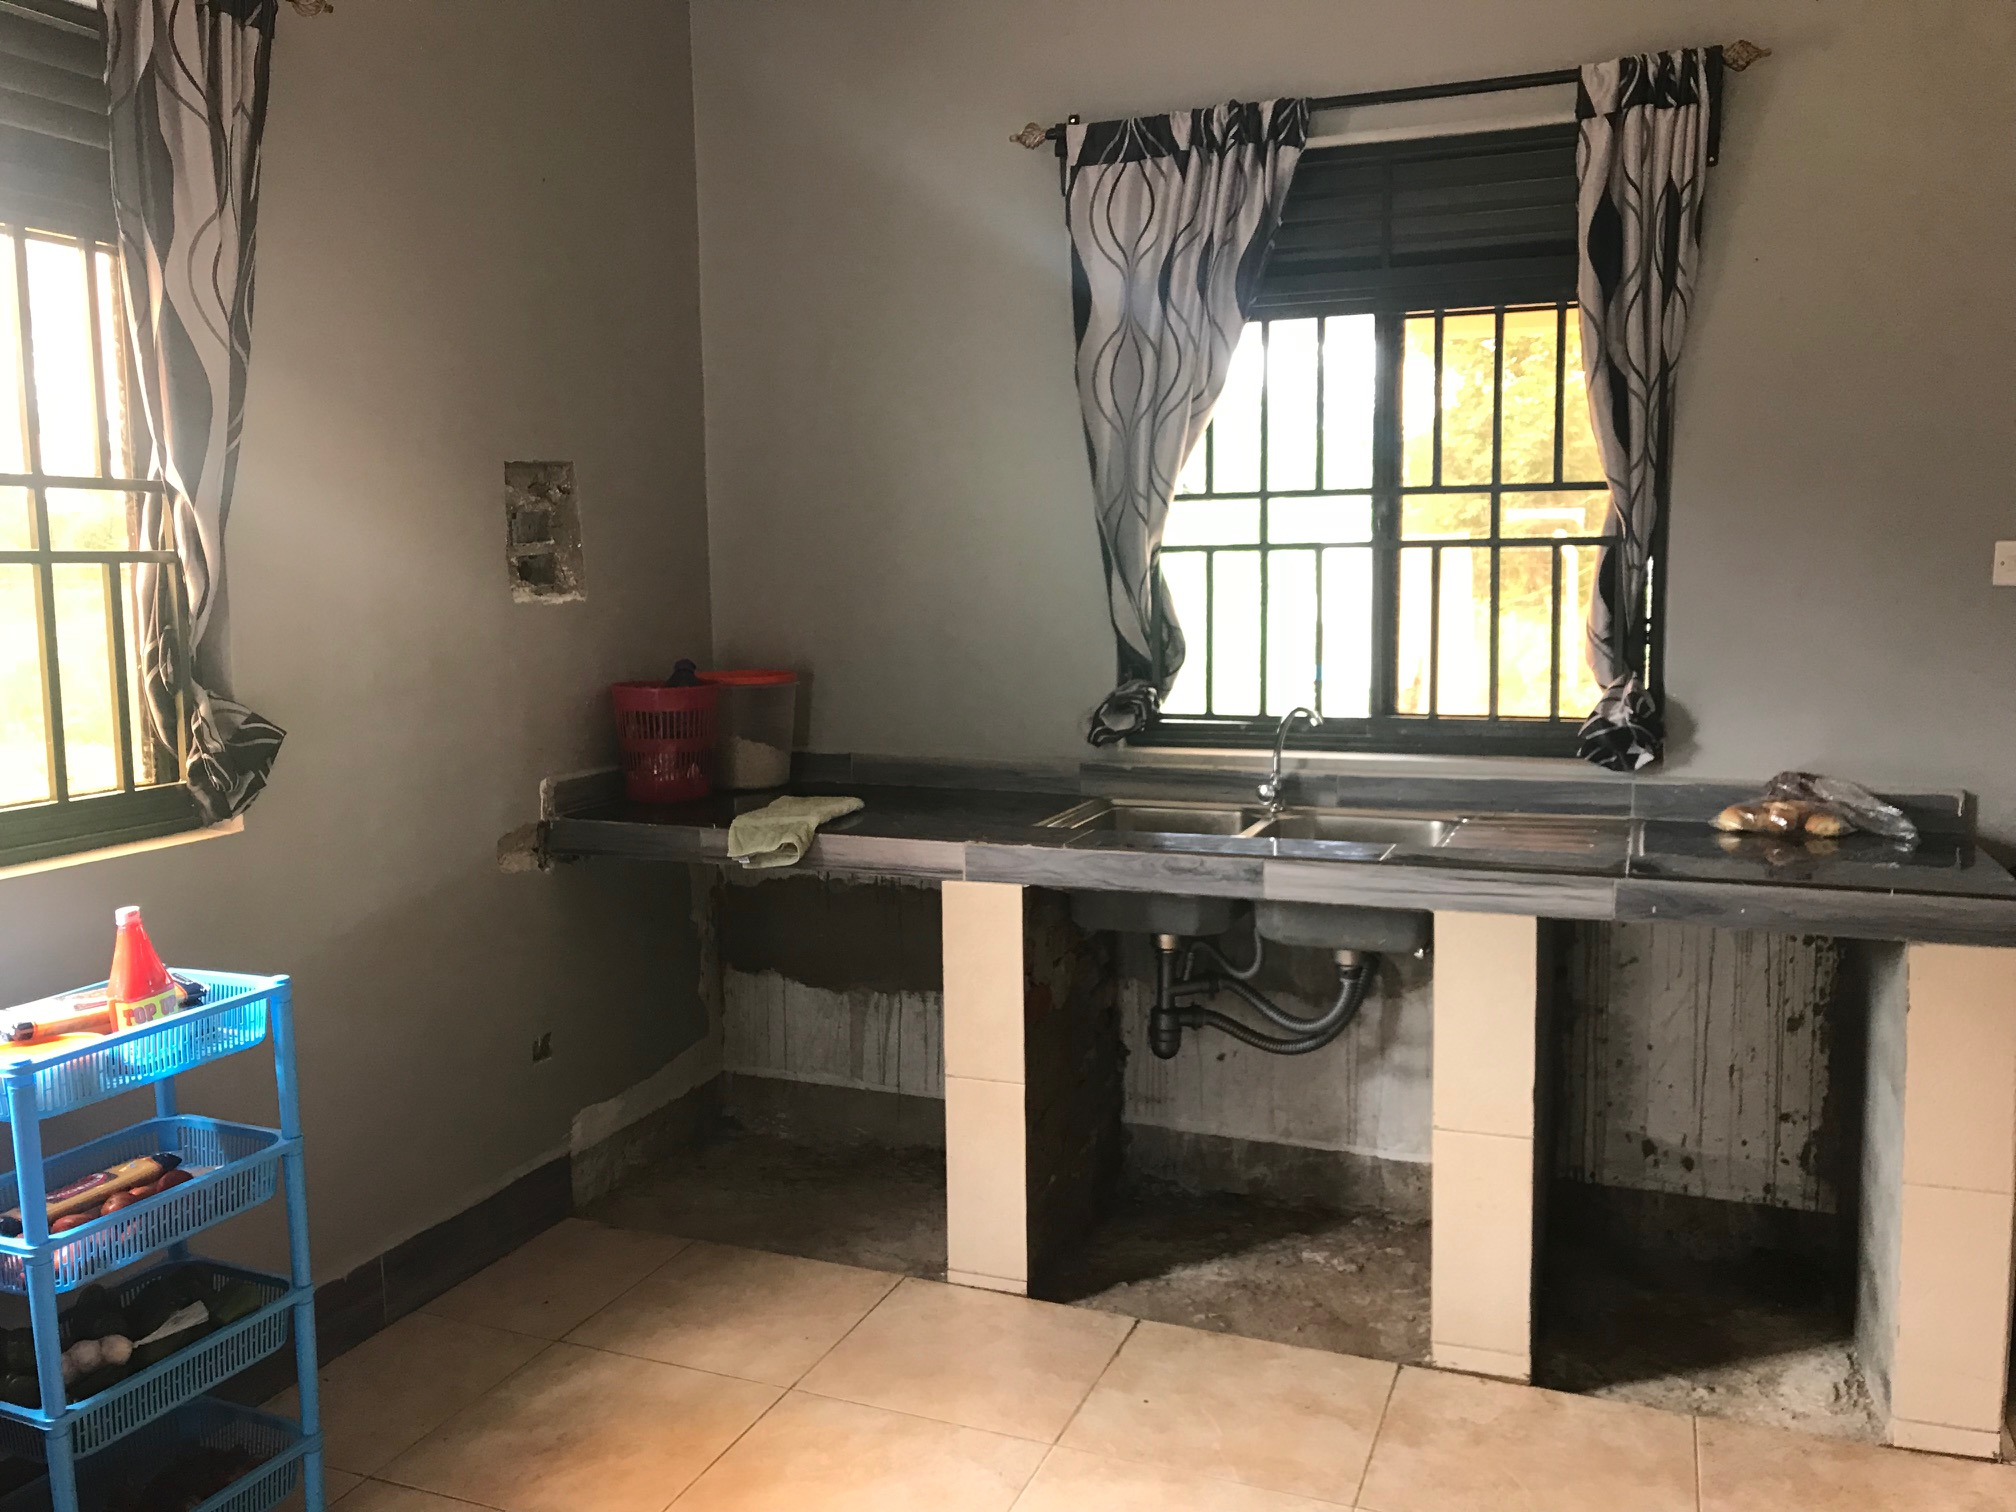 Kitchen (needing cabinets)